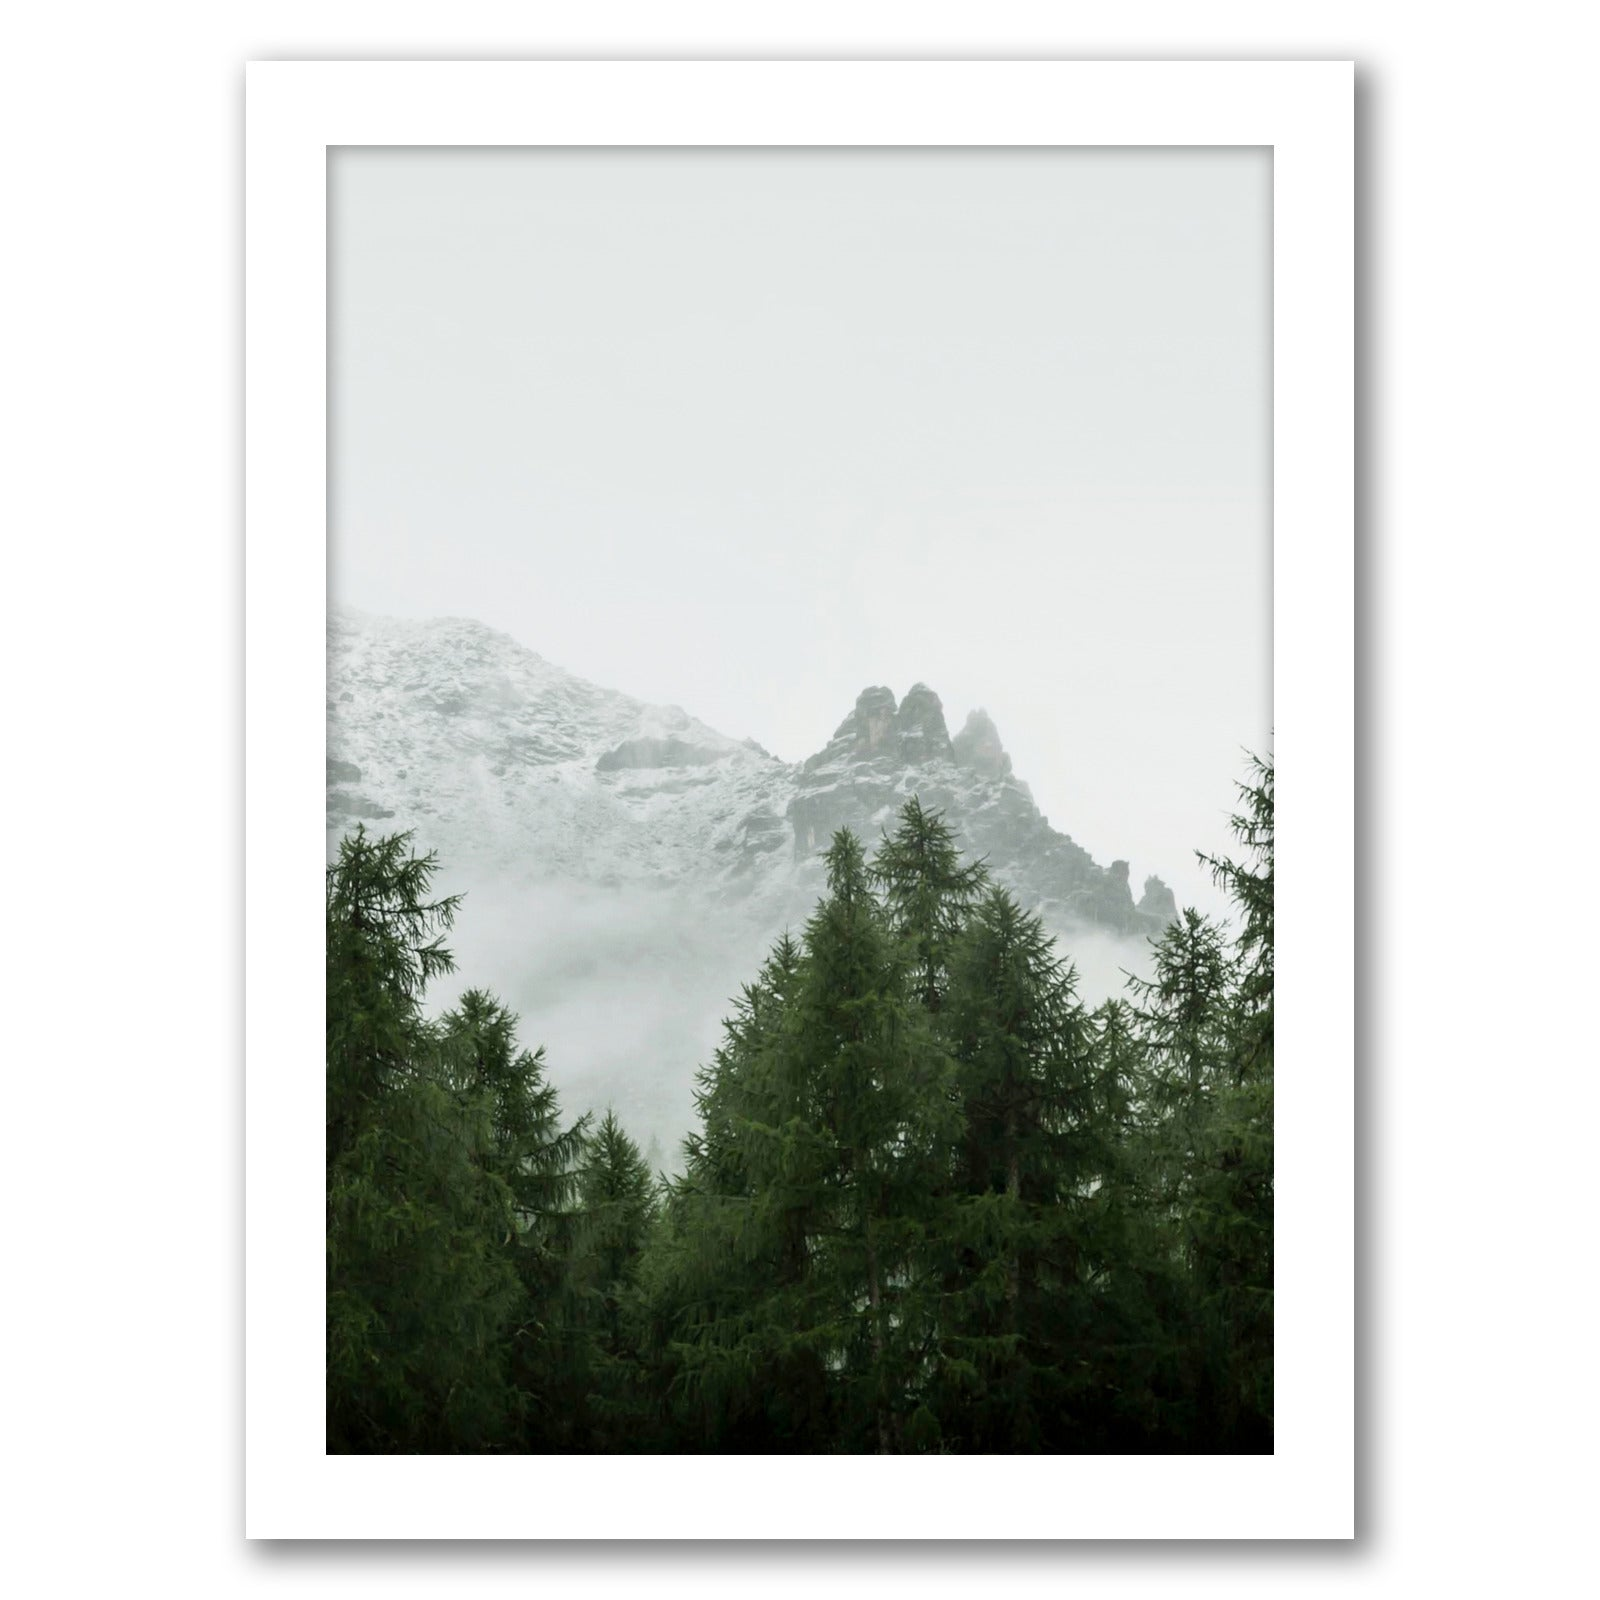 "Misty Woodland by Tanya Shumkina - White Framed Print, Wall Art, Tanya Shumkina, 8"" x 10"""